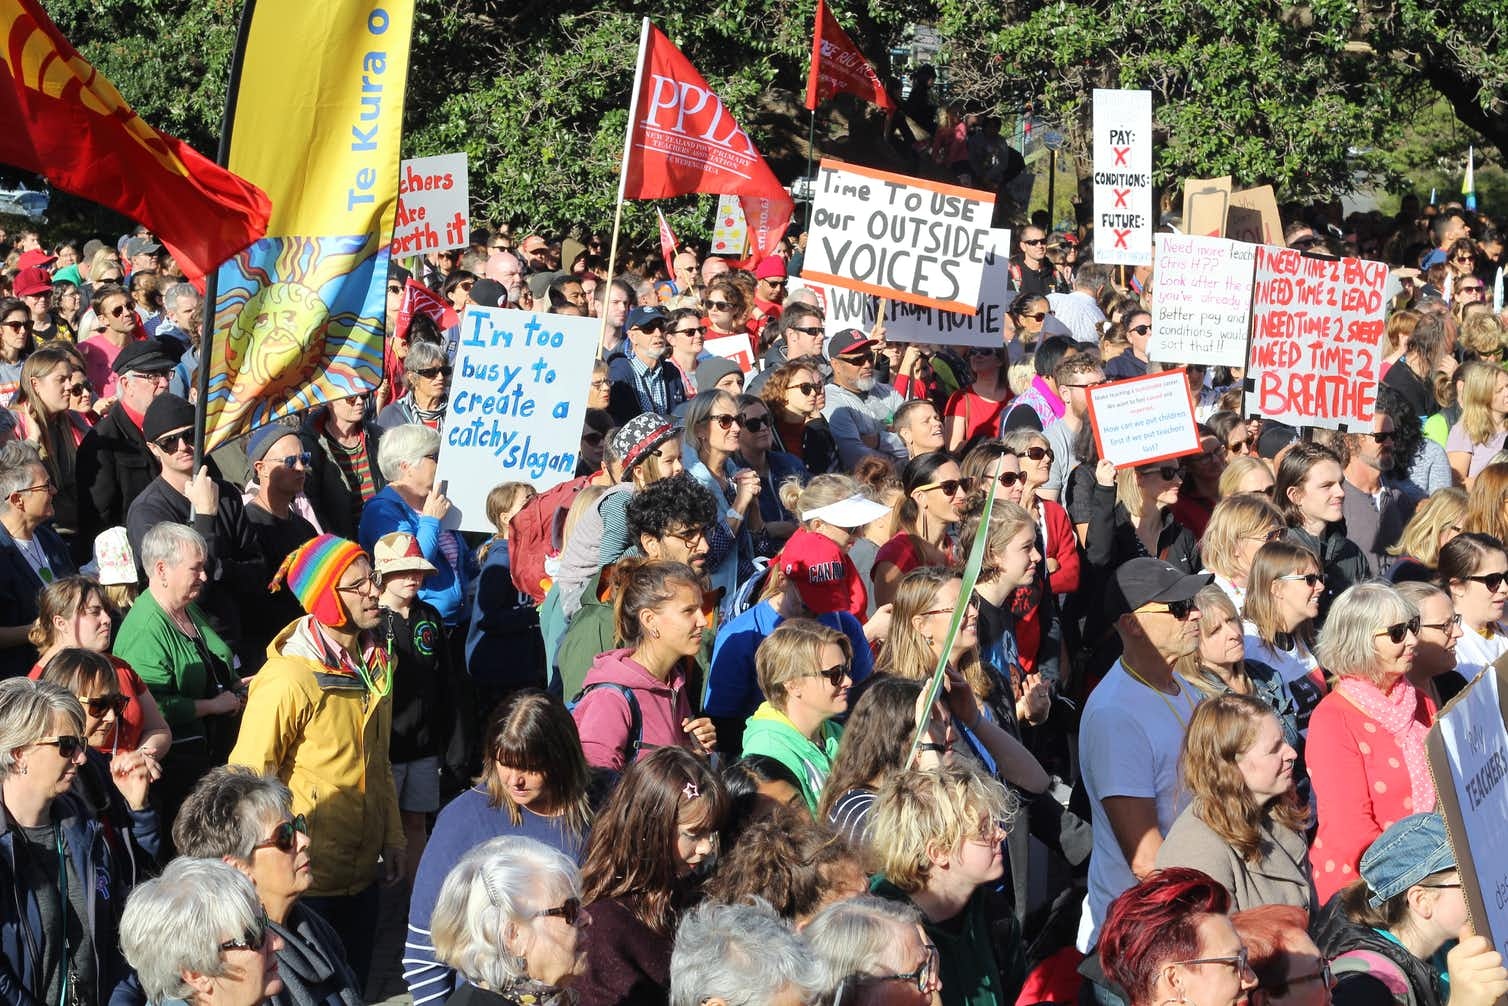 Primary and secondary teachers took to the streets. Photo credit:  AAP/Boris Jancic, CC BY-ND